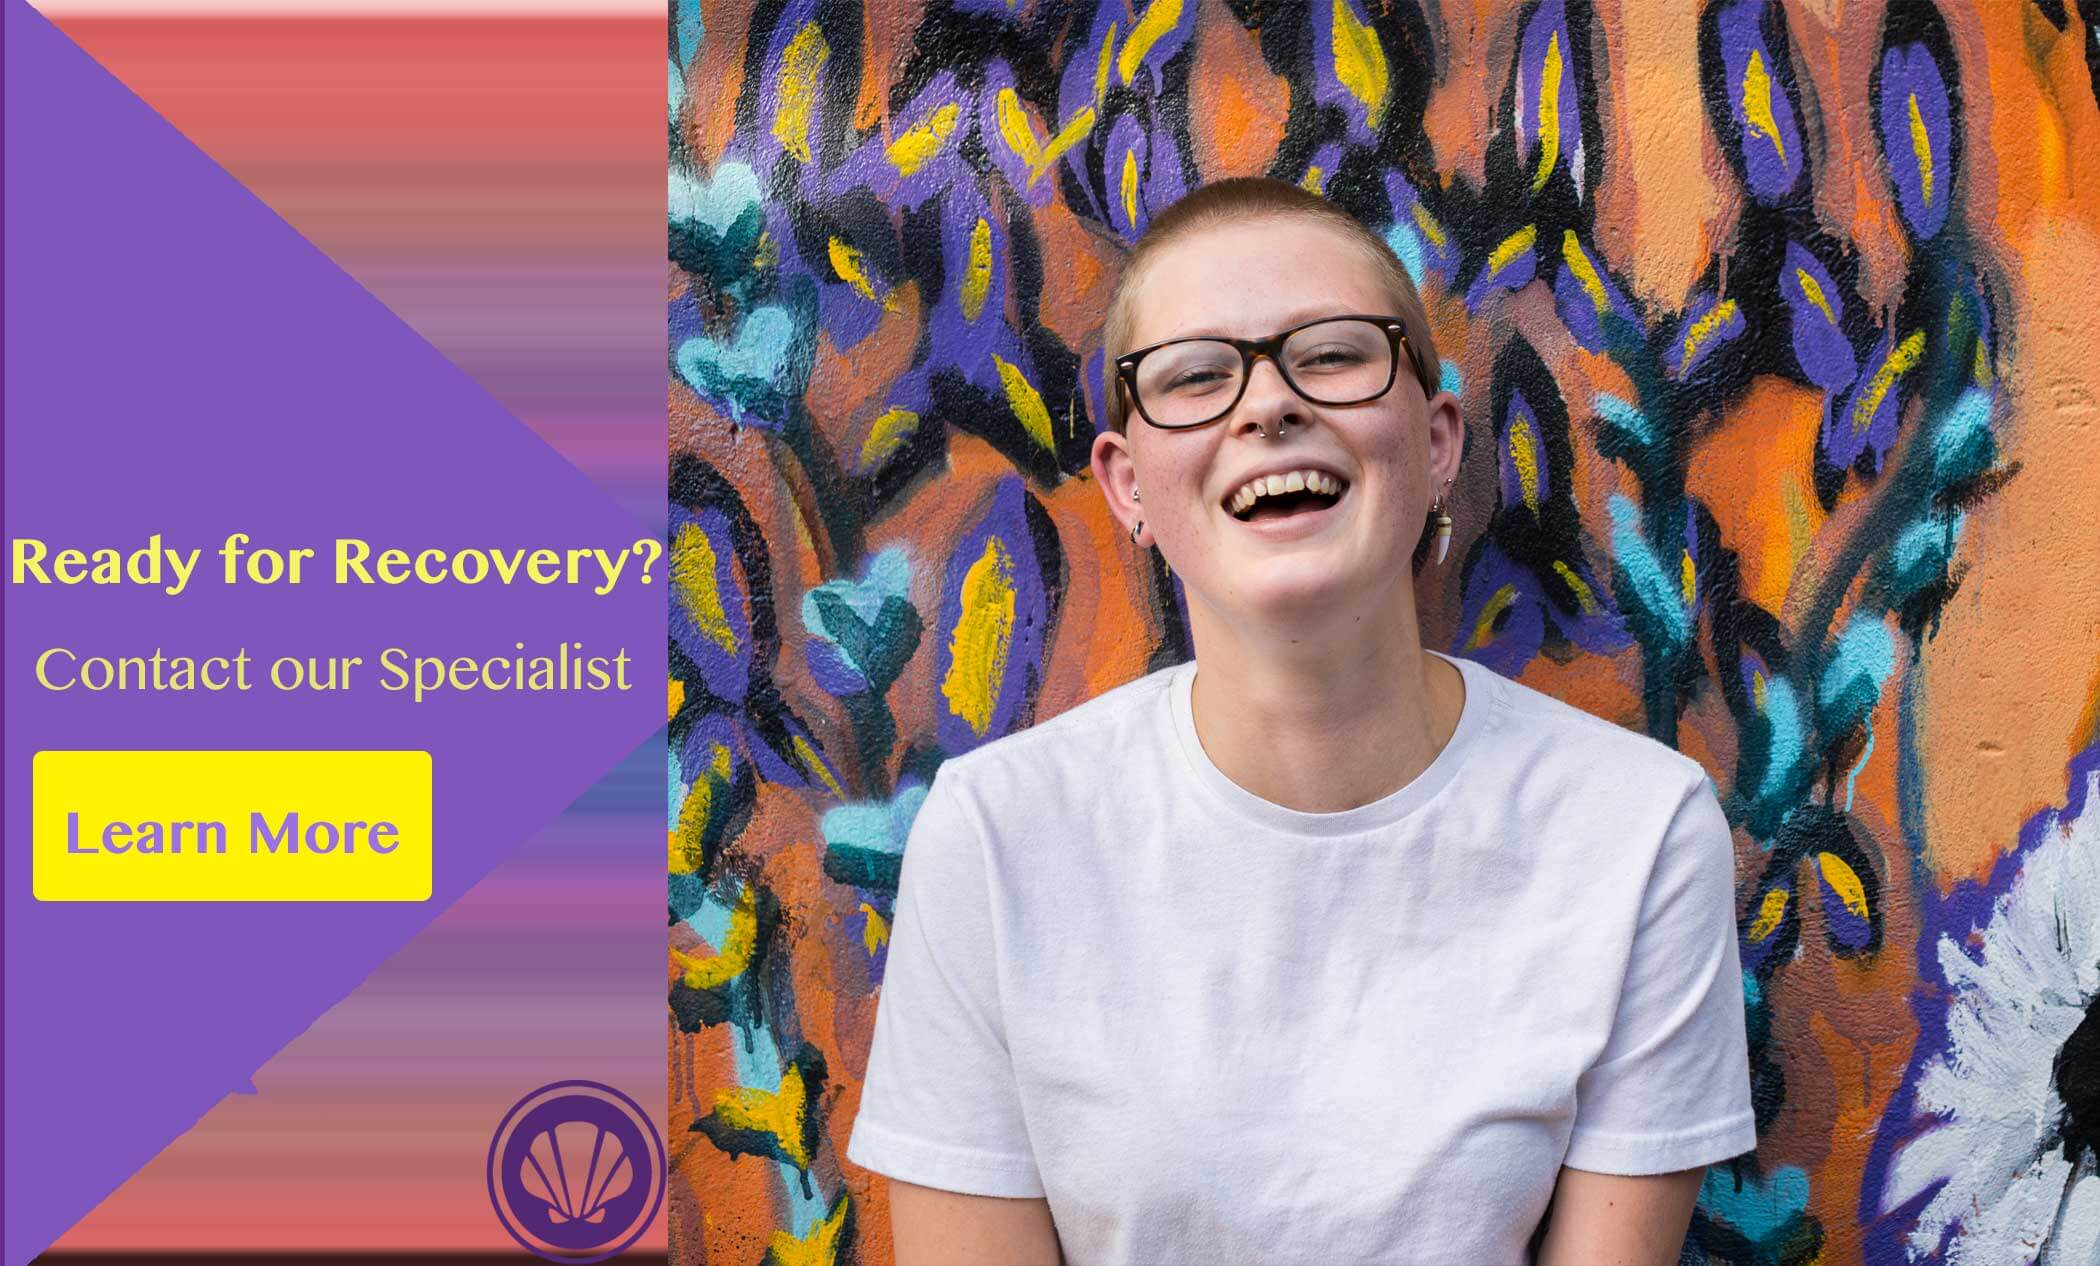 lgbtq female smiling infront of a colorful wall with yellow text beside her that reads ready for recovery? contact our specialist and learn more.